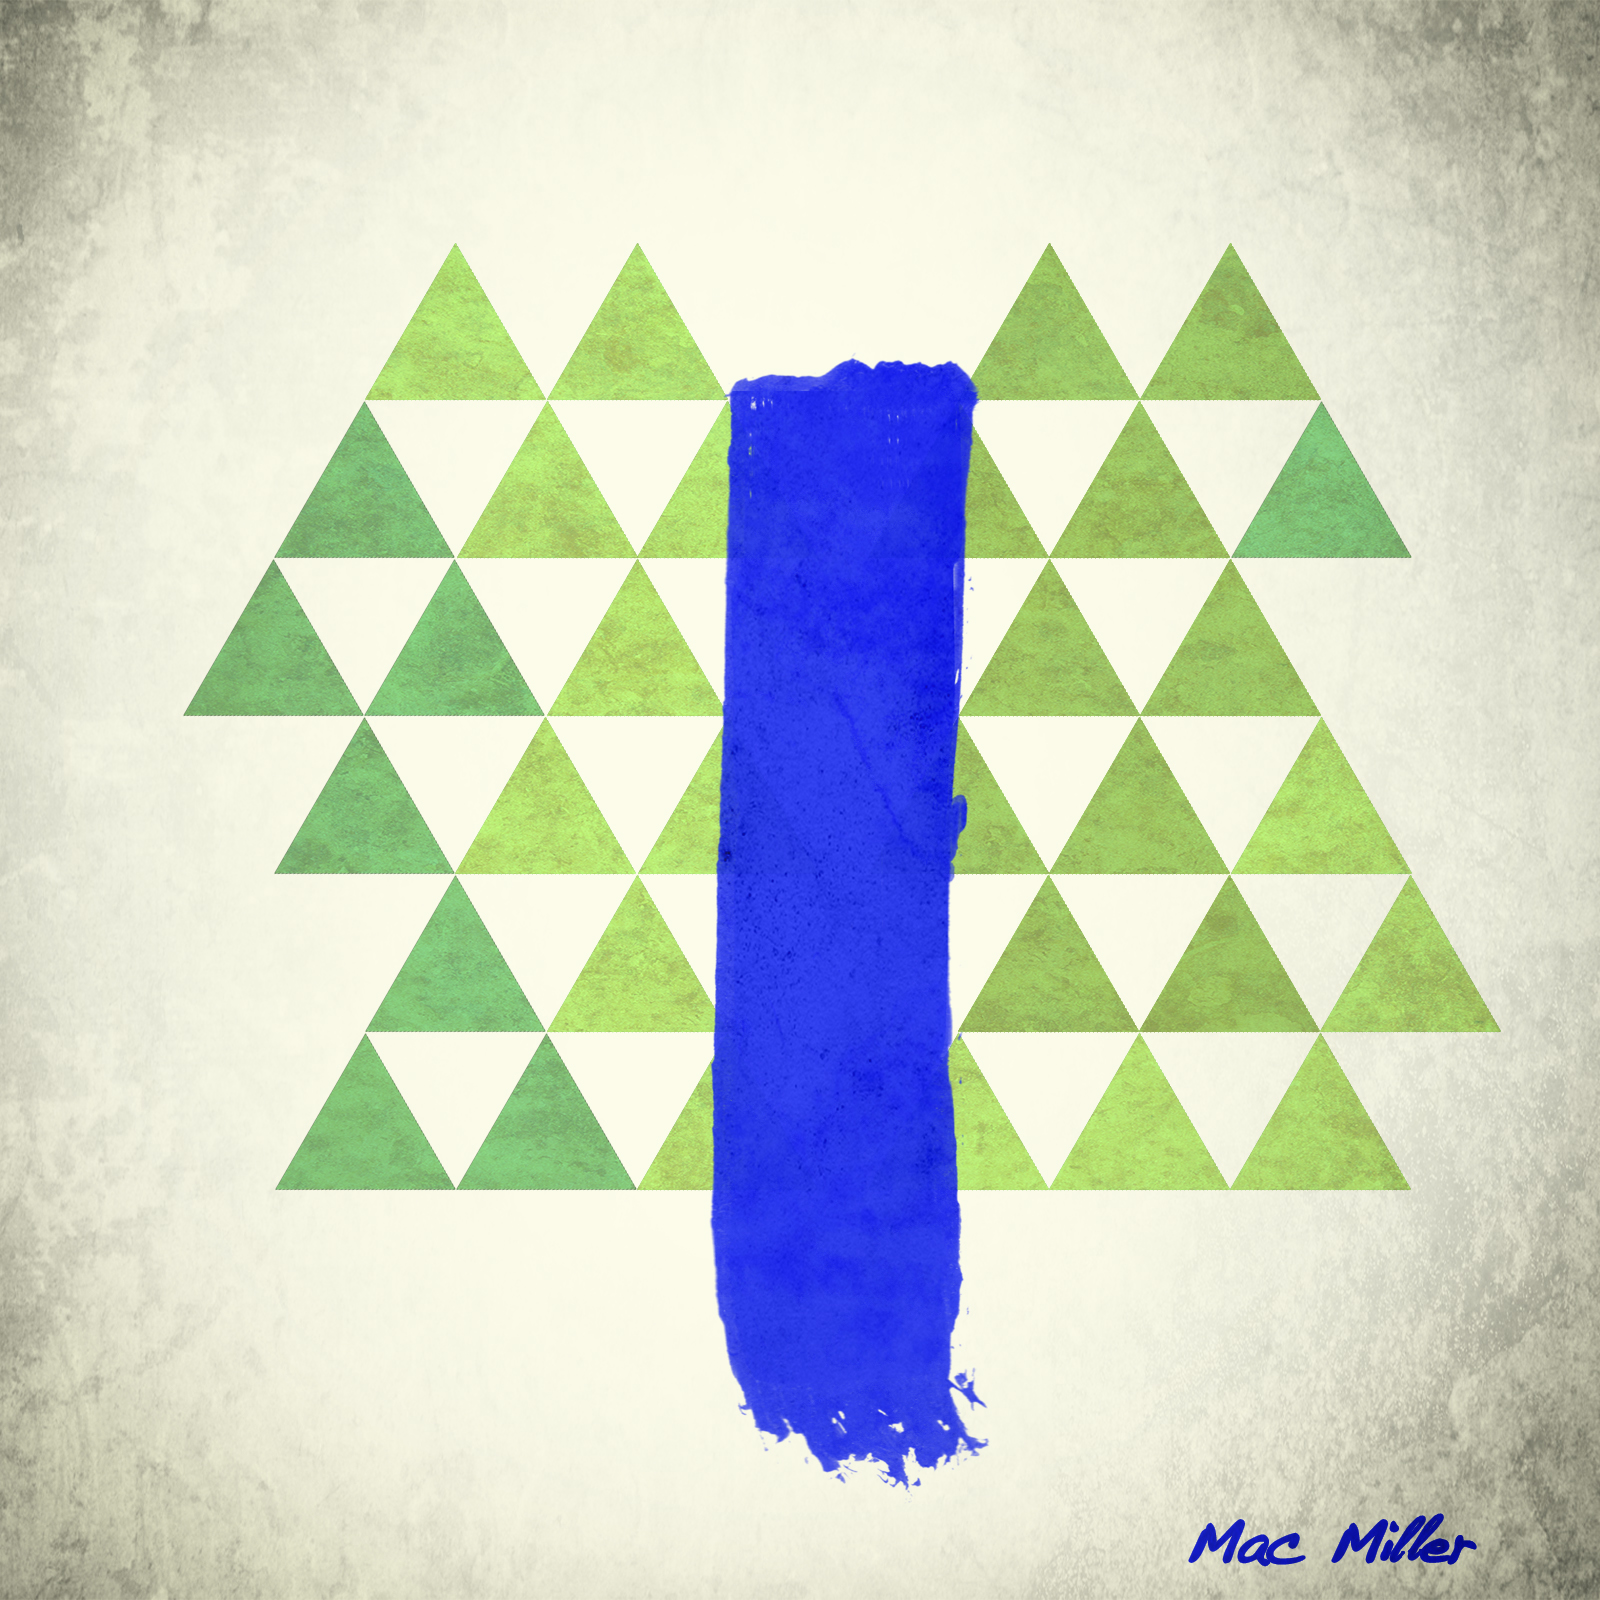 blue slide park album cover remake by xinfectionx on